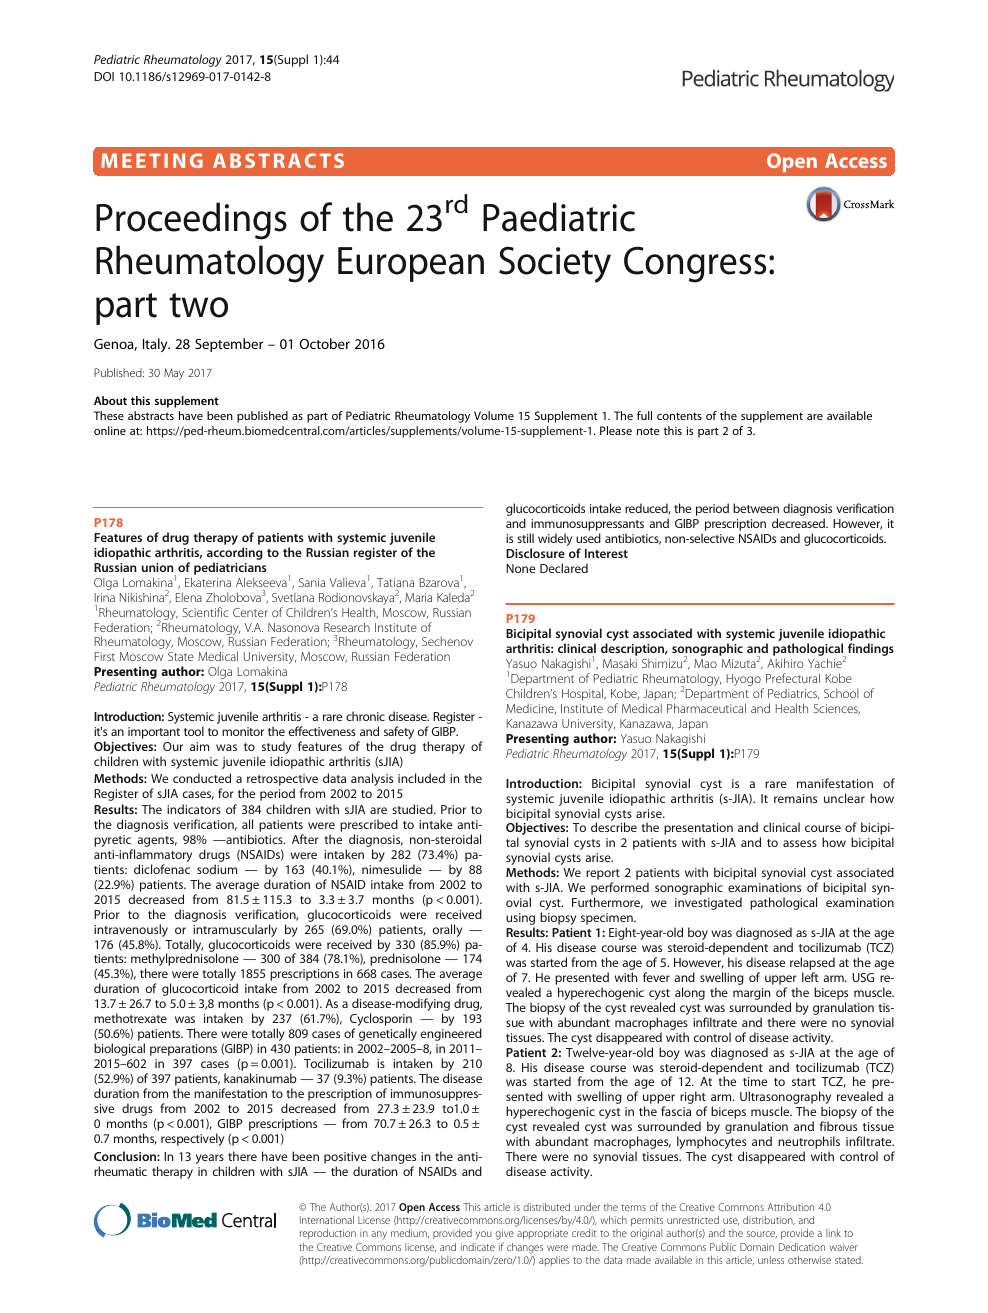 Proceedings of the 23rd Paediatric Rheumatology European